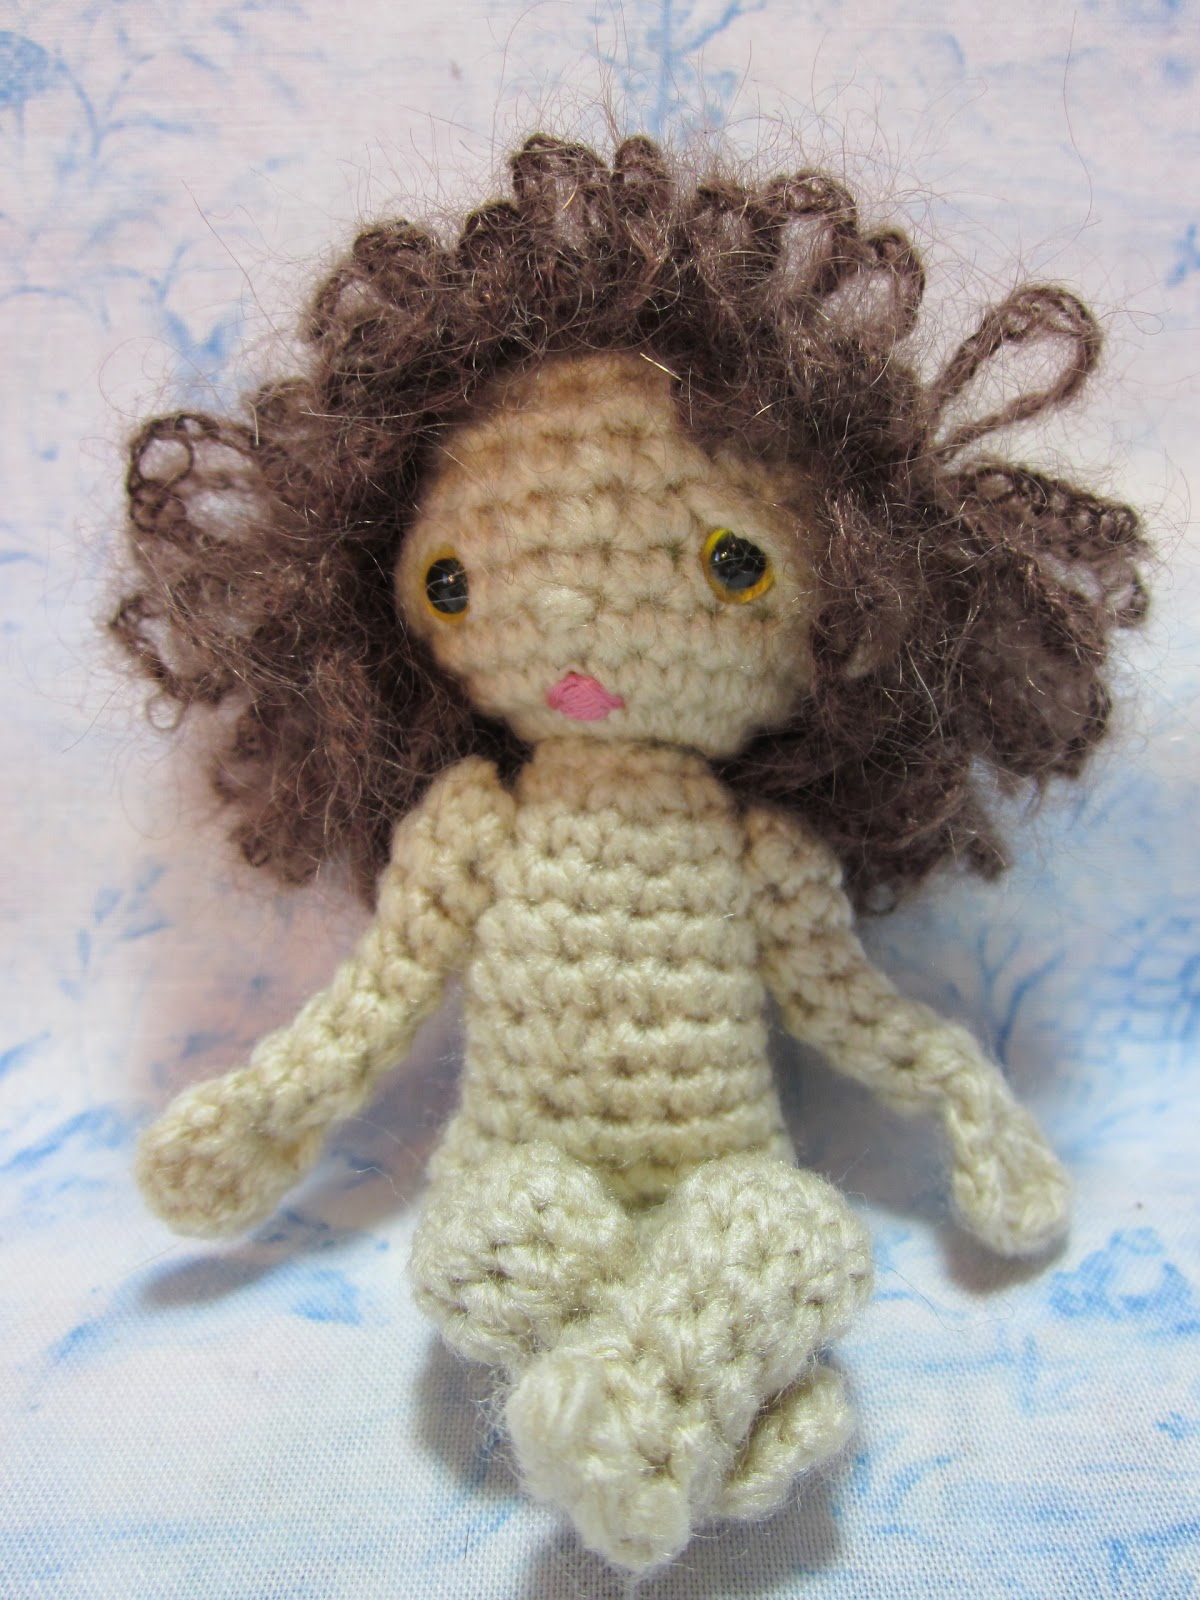 Amigurumi Curly Hair Tutorial : CURLY CROCHET DOLL HAIR PATTERN - Crochet and Knitting ...